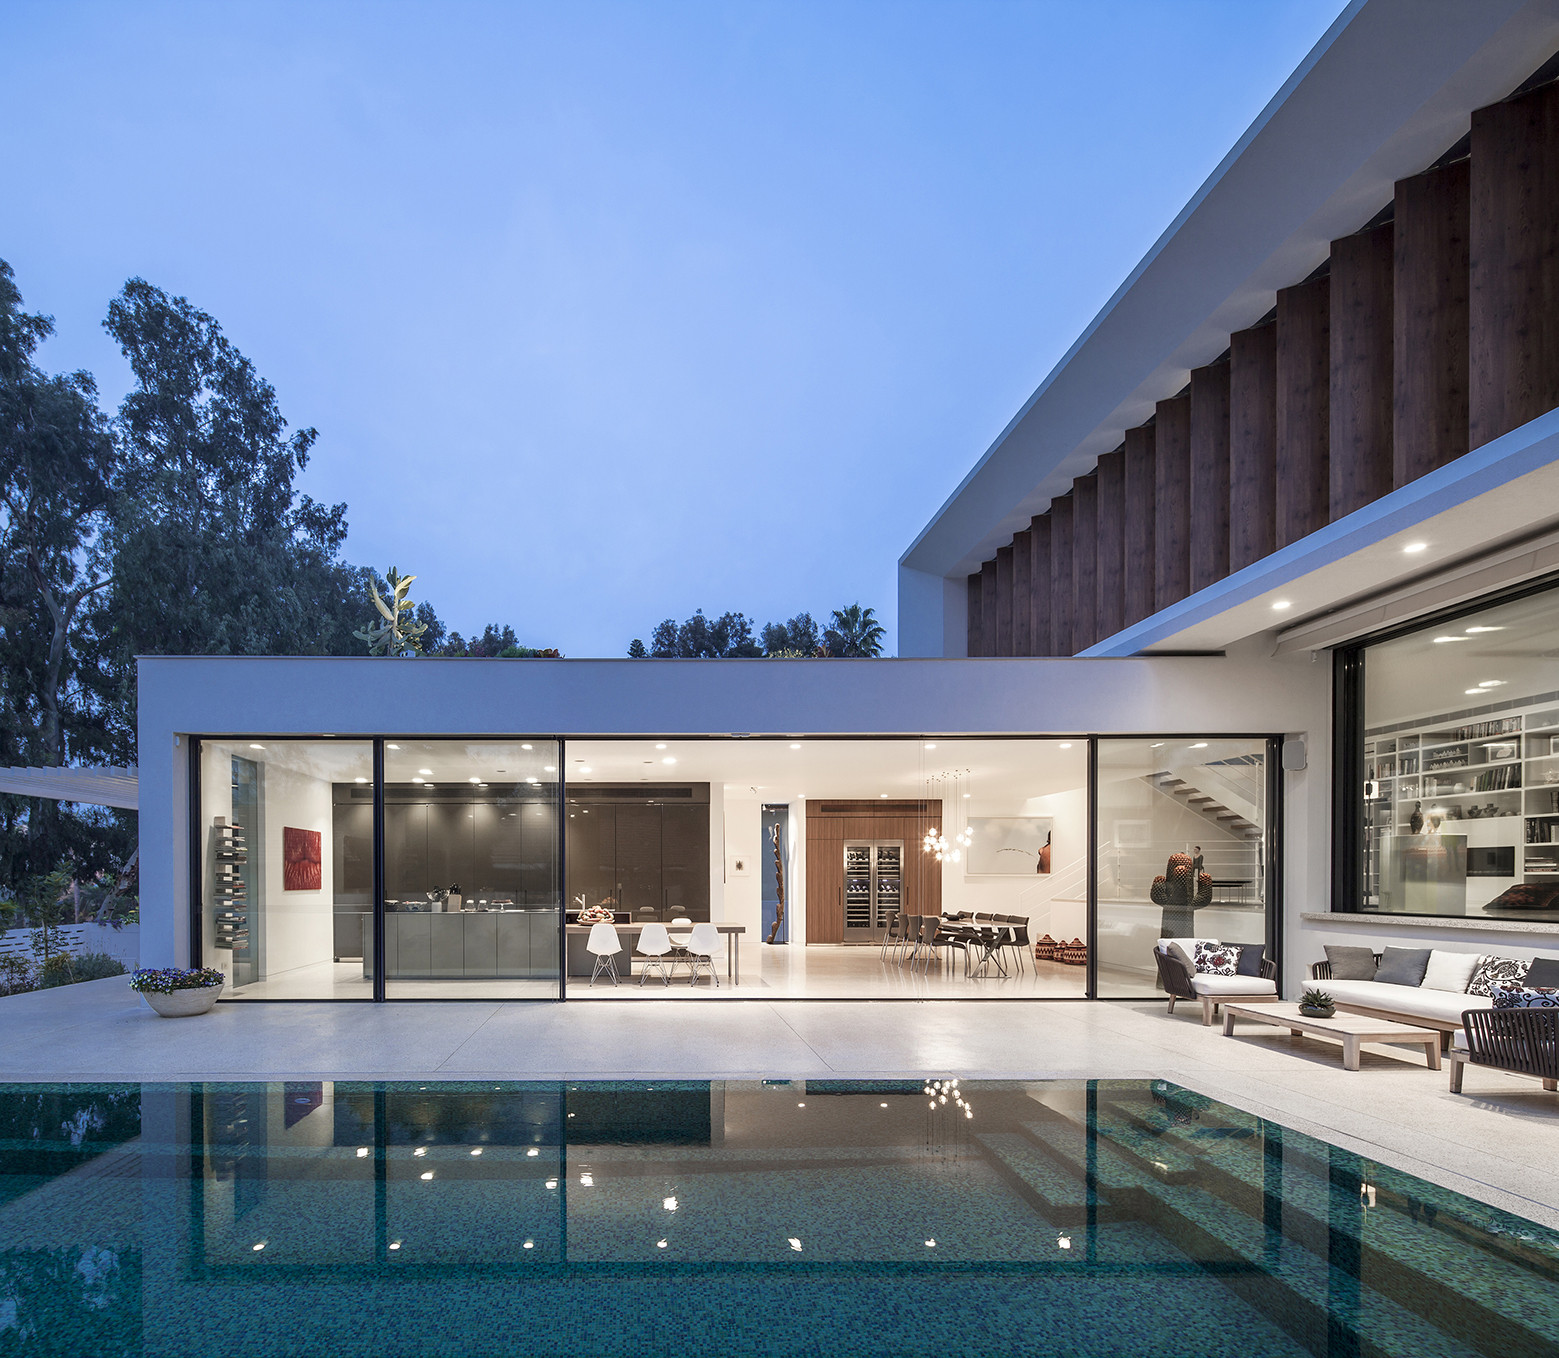 Tv house a mediterranean villa by paz gersh architects for L home design